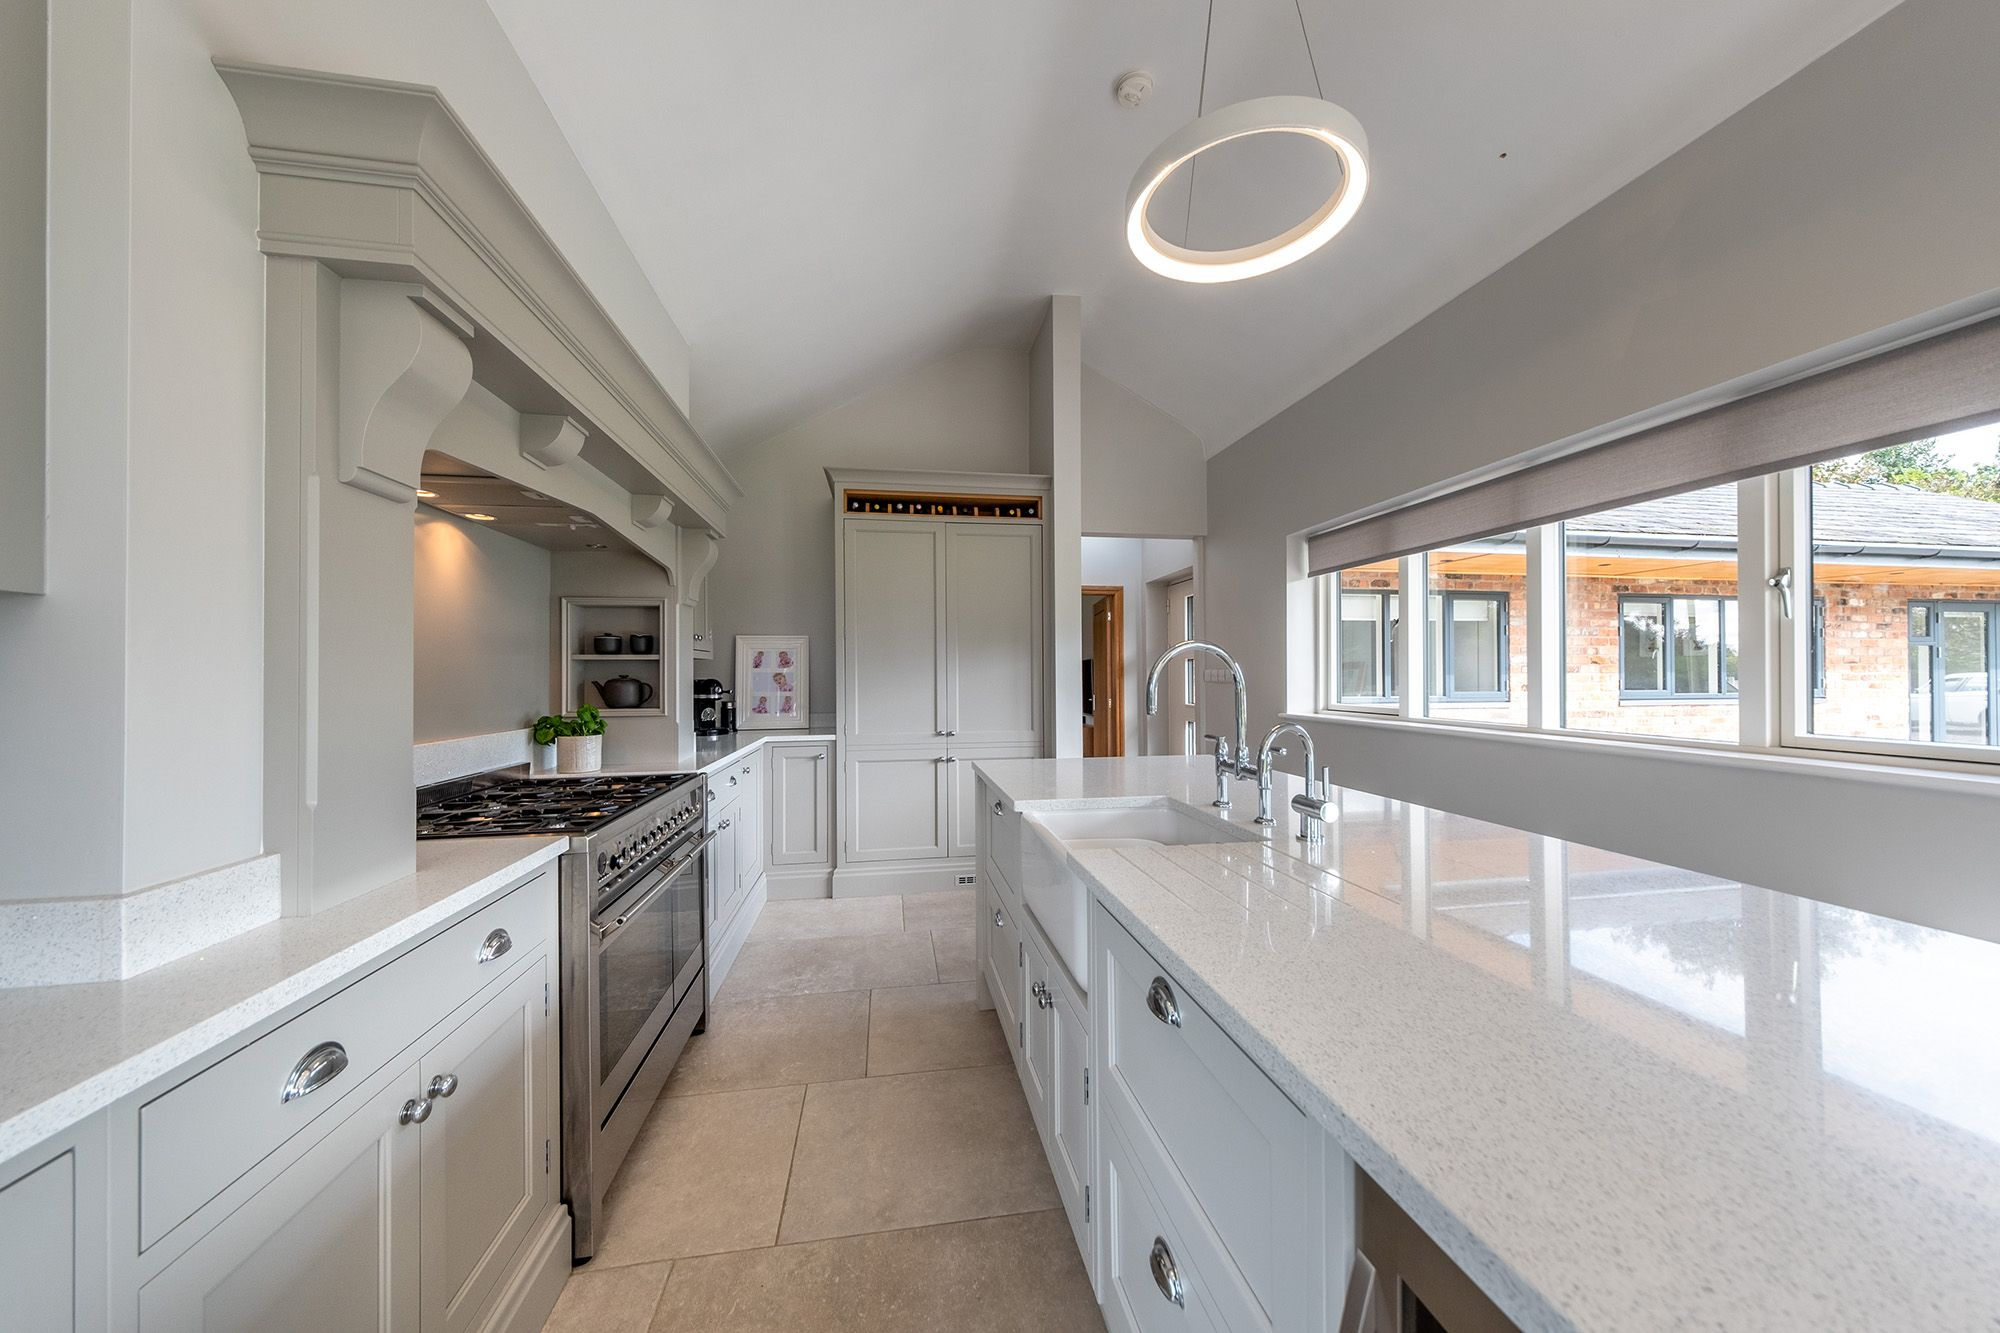 Modern kitchen with vaulted ceiling large island and range cooker #vaultedceilingdecor